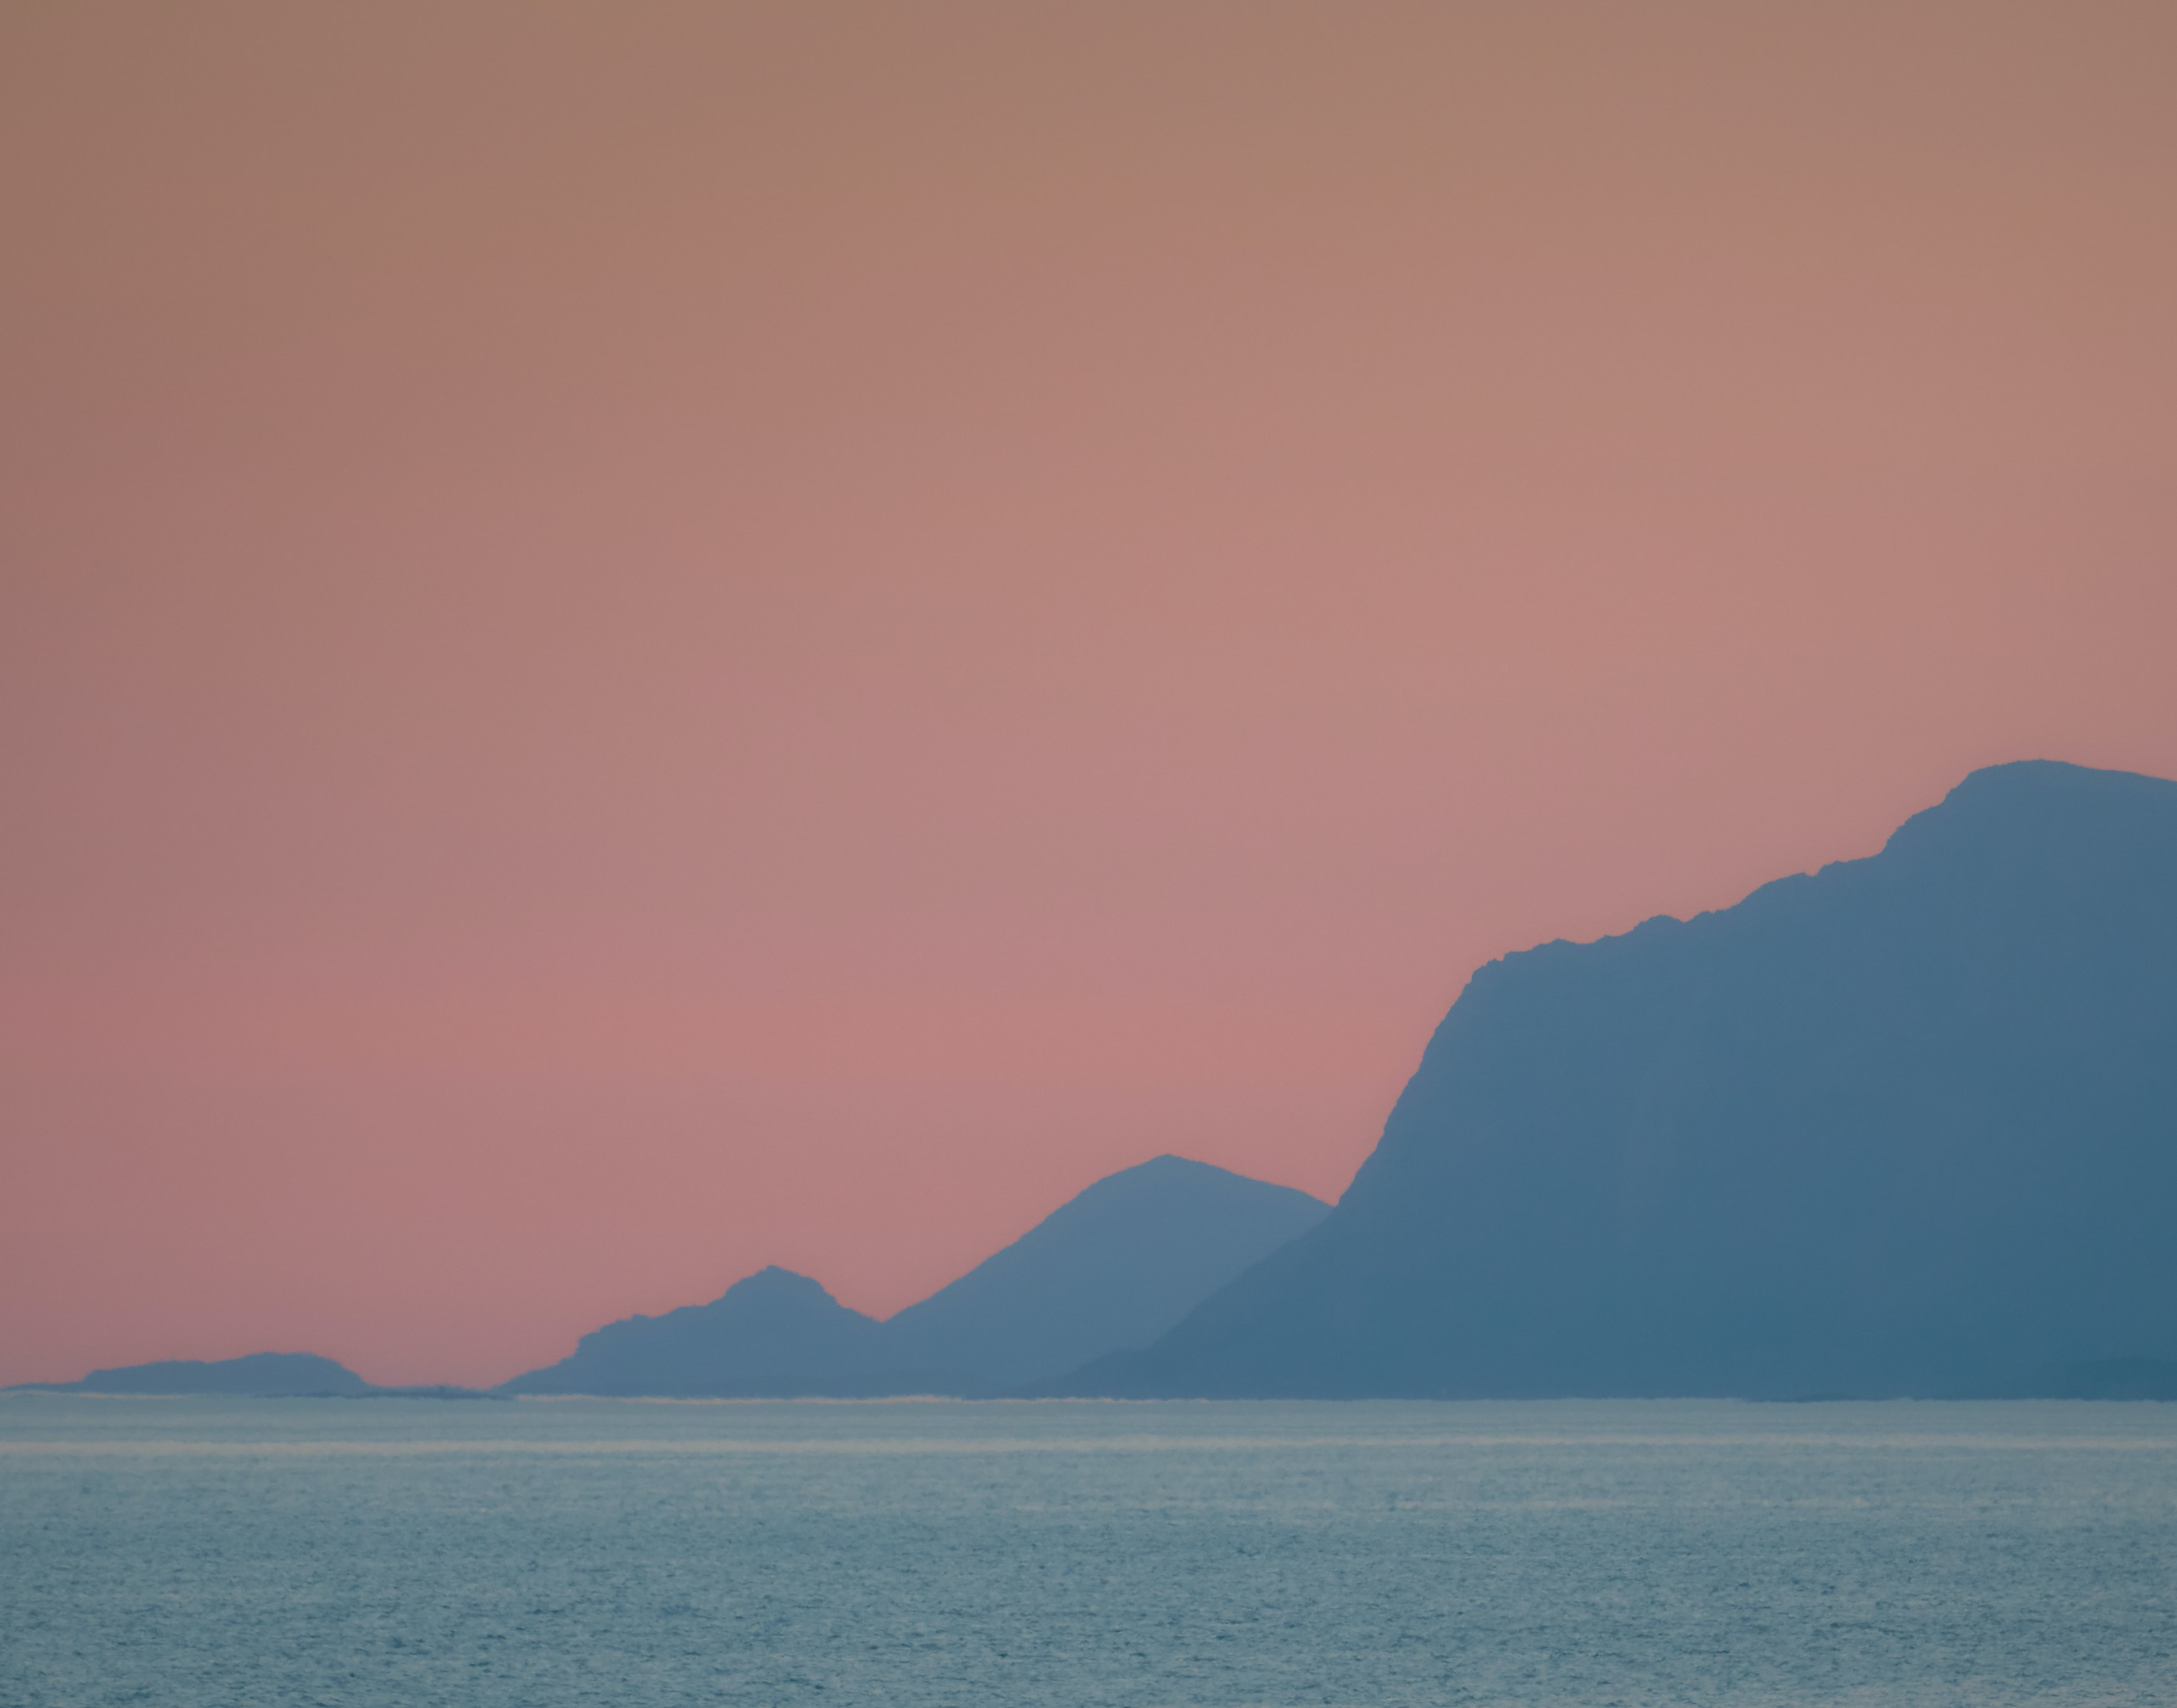 silhouette of mountain range in landscape photography